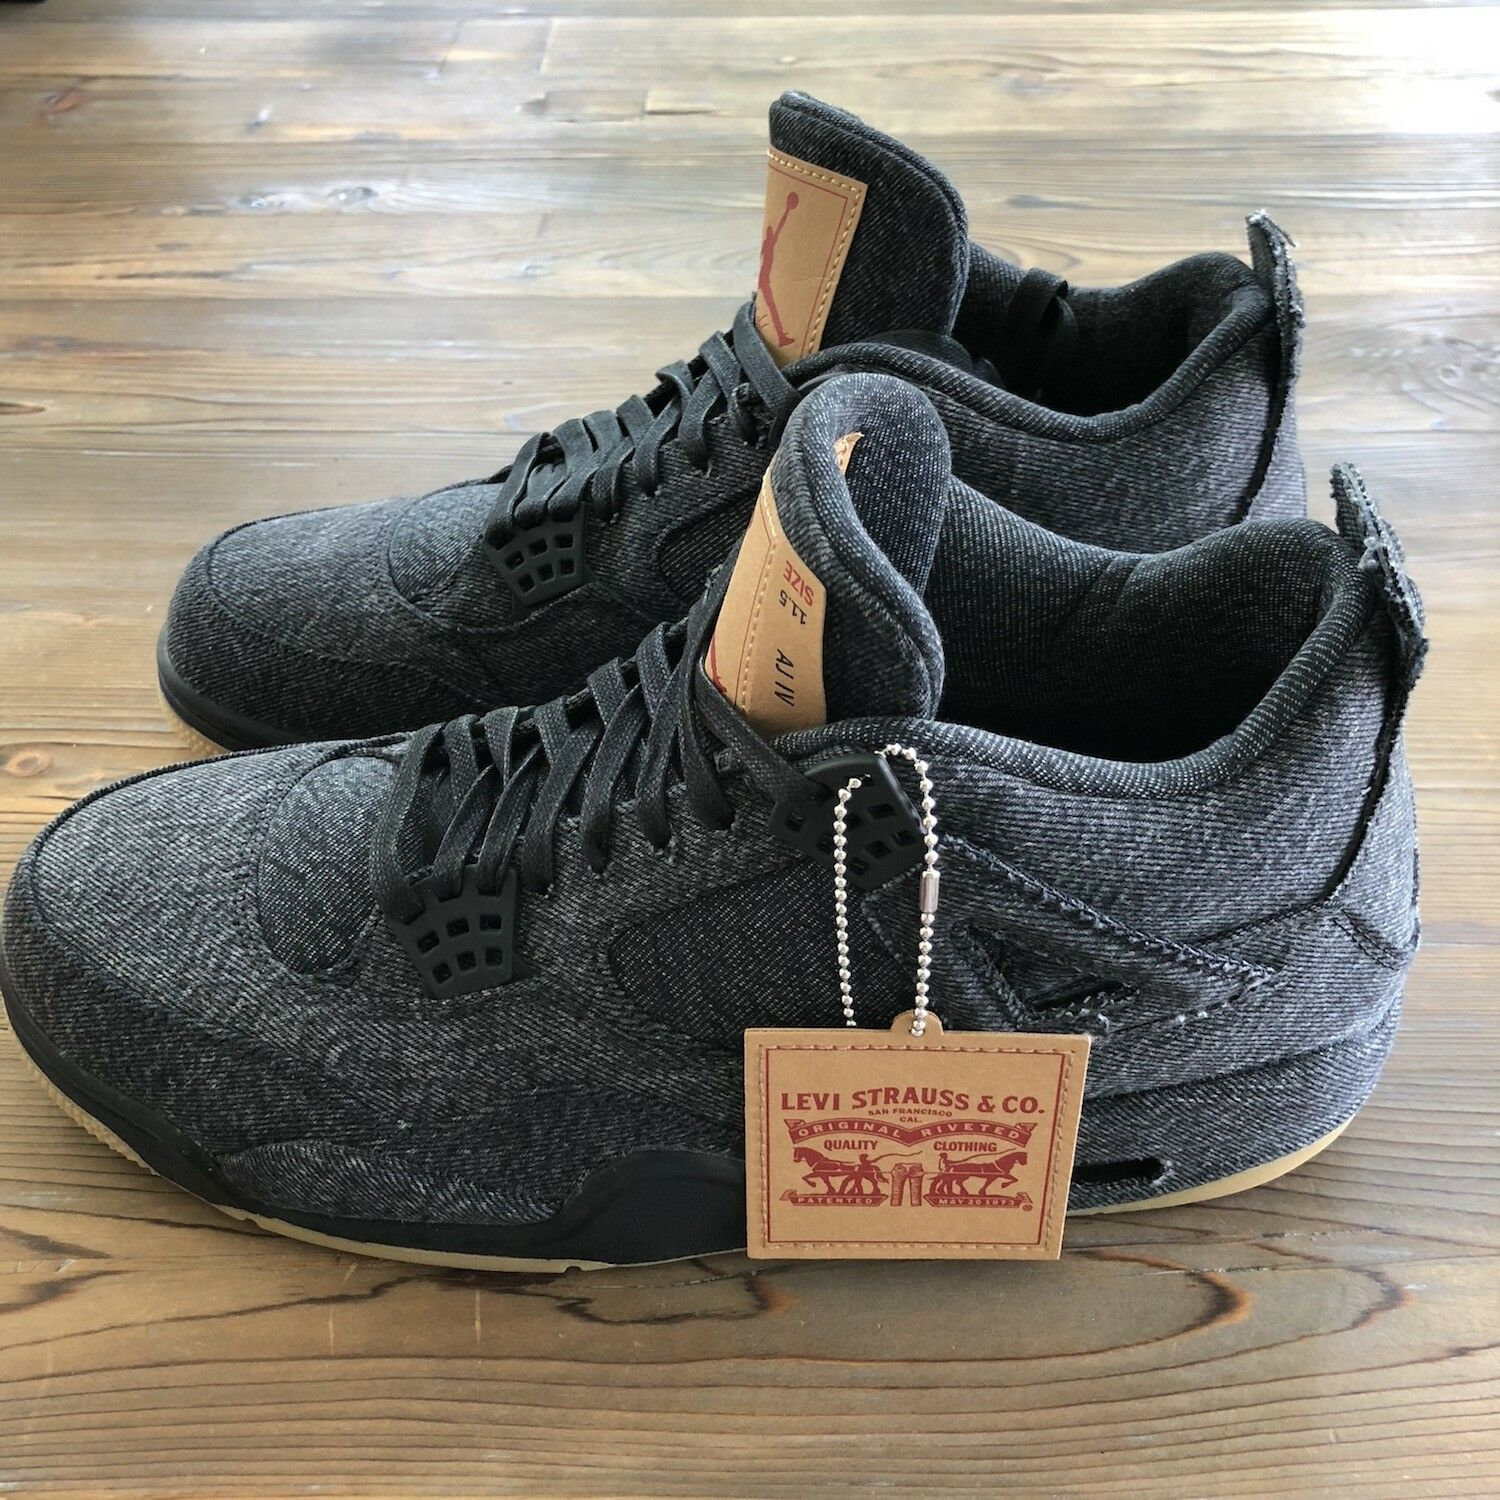 New Deadstock Nike Air Jordan Retro 4 Levis NRG Black Denim 11.5 US A02571-001 The latest discount shoes for men and women